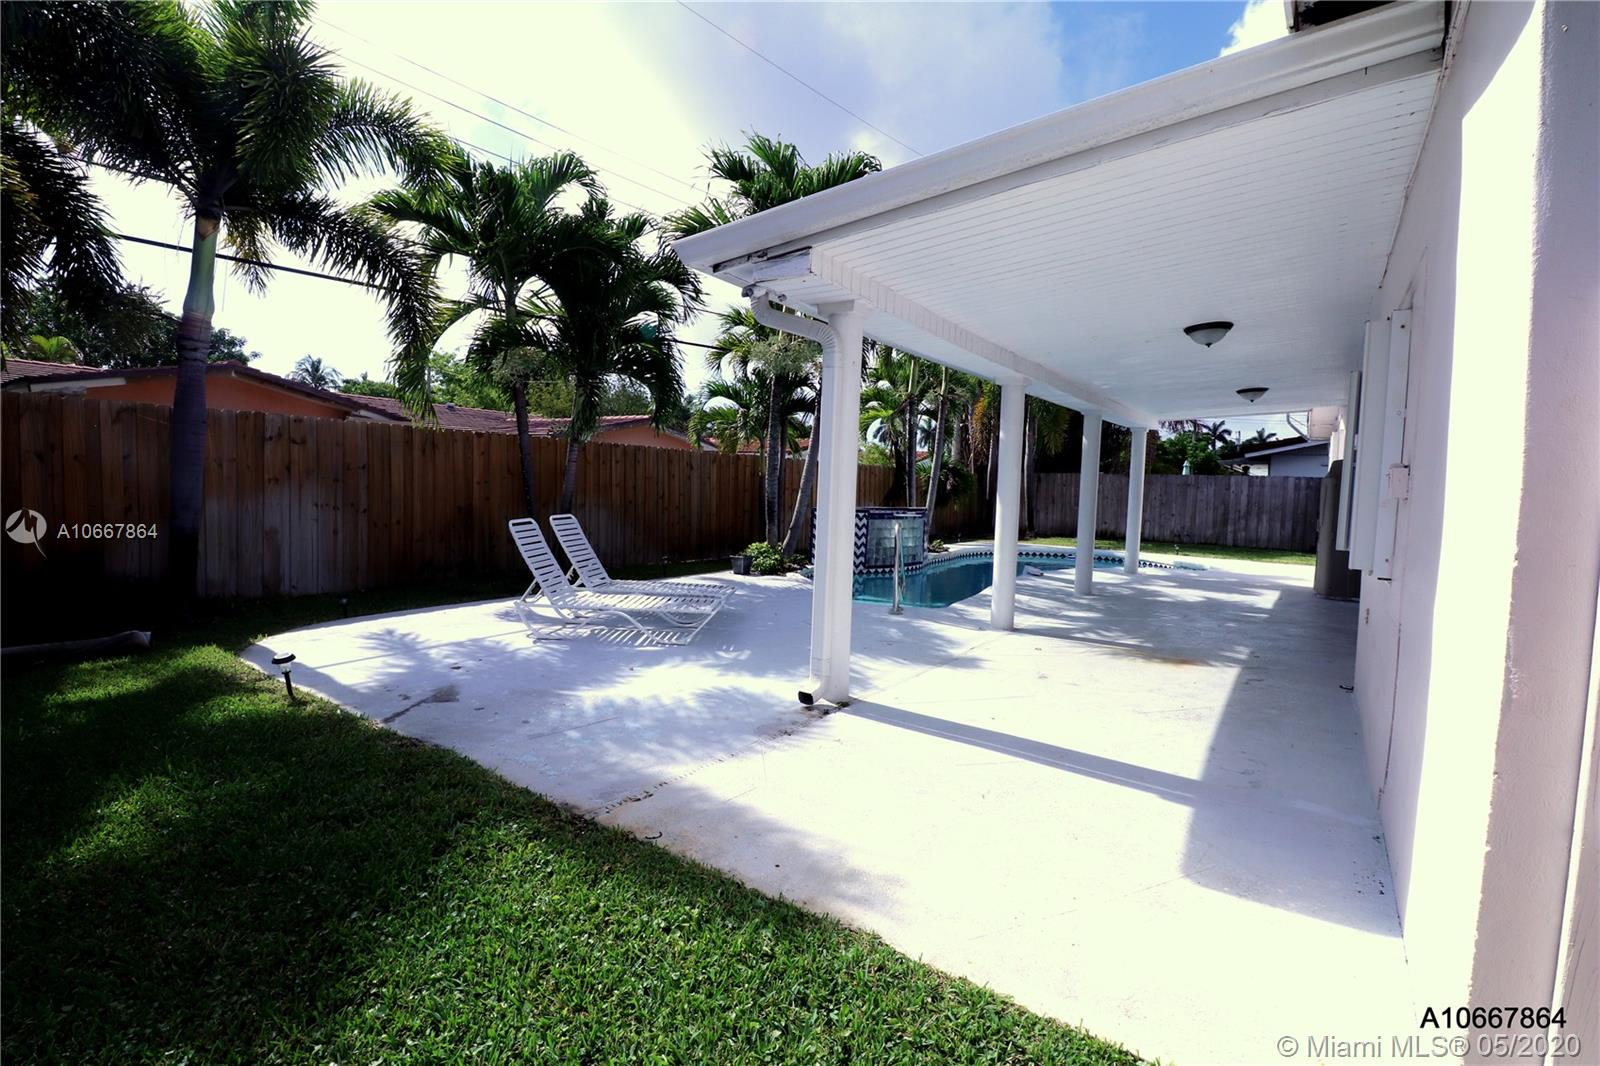 21301 NE 20th Ave, Miami FL 33179